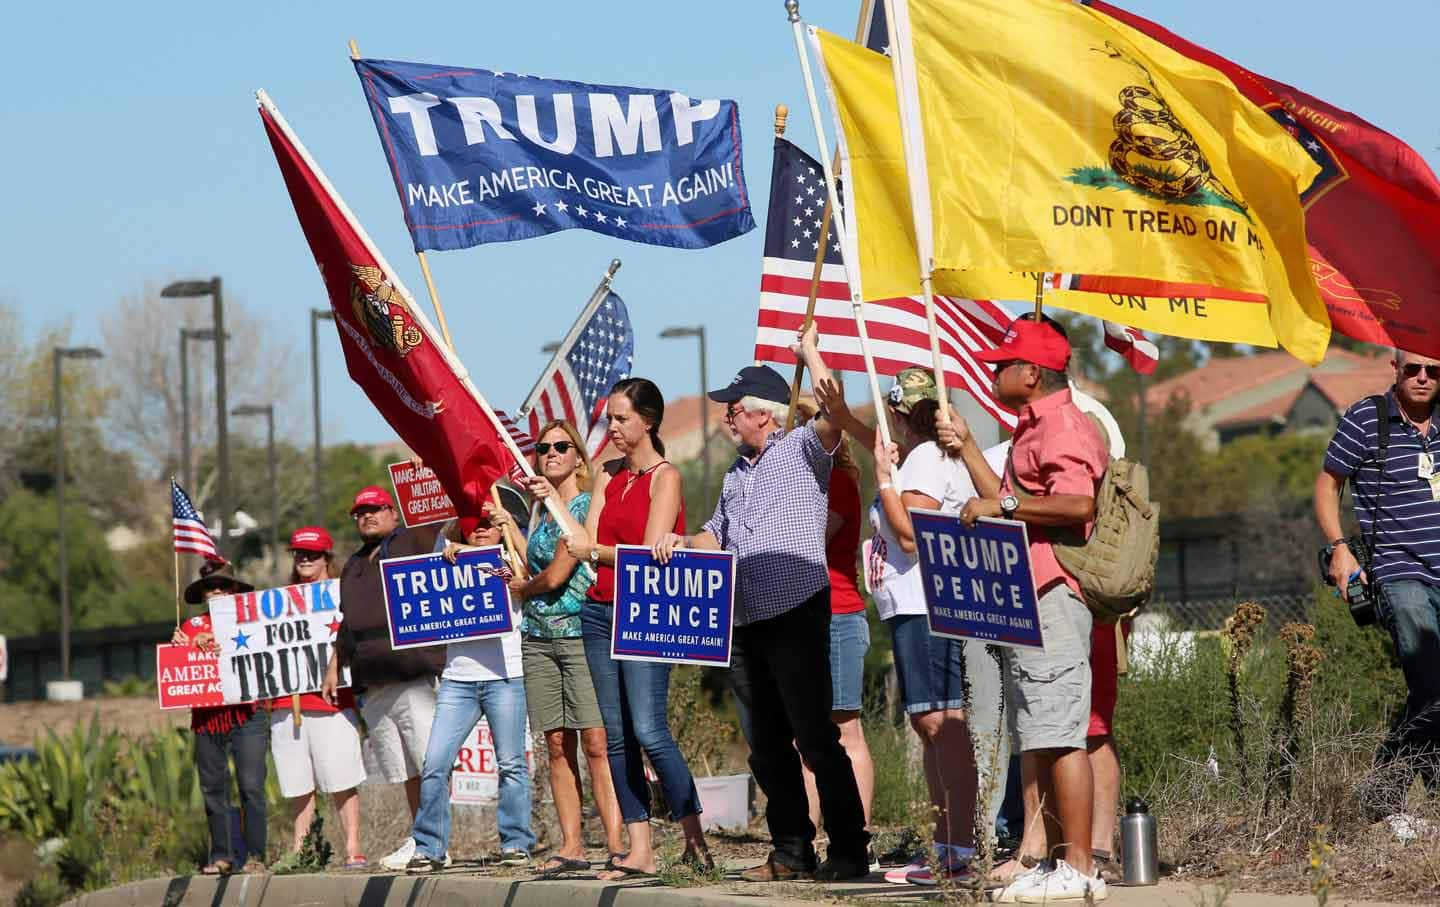 Studies Conclude Majority of Trump Voters Motivated By Racism—Not Just Economic Concerns